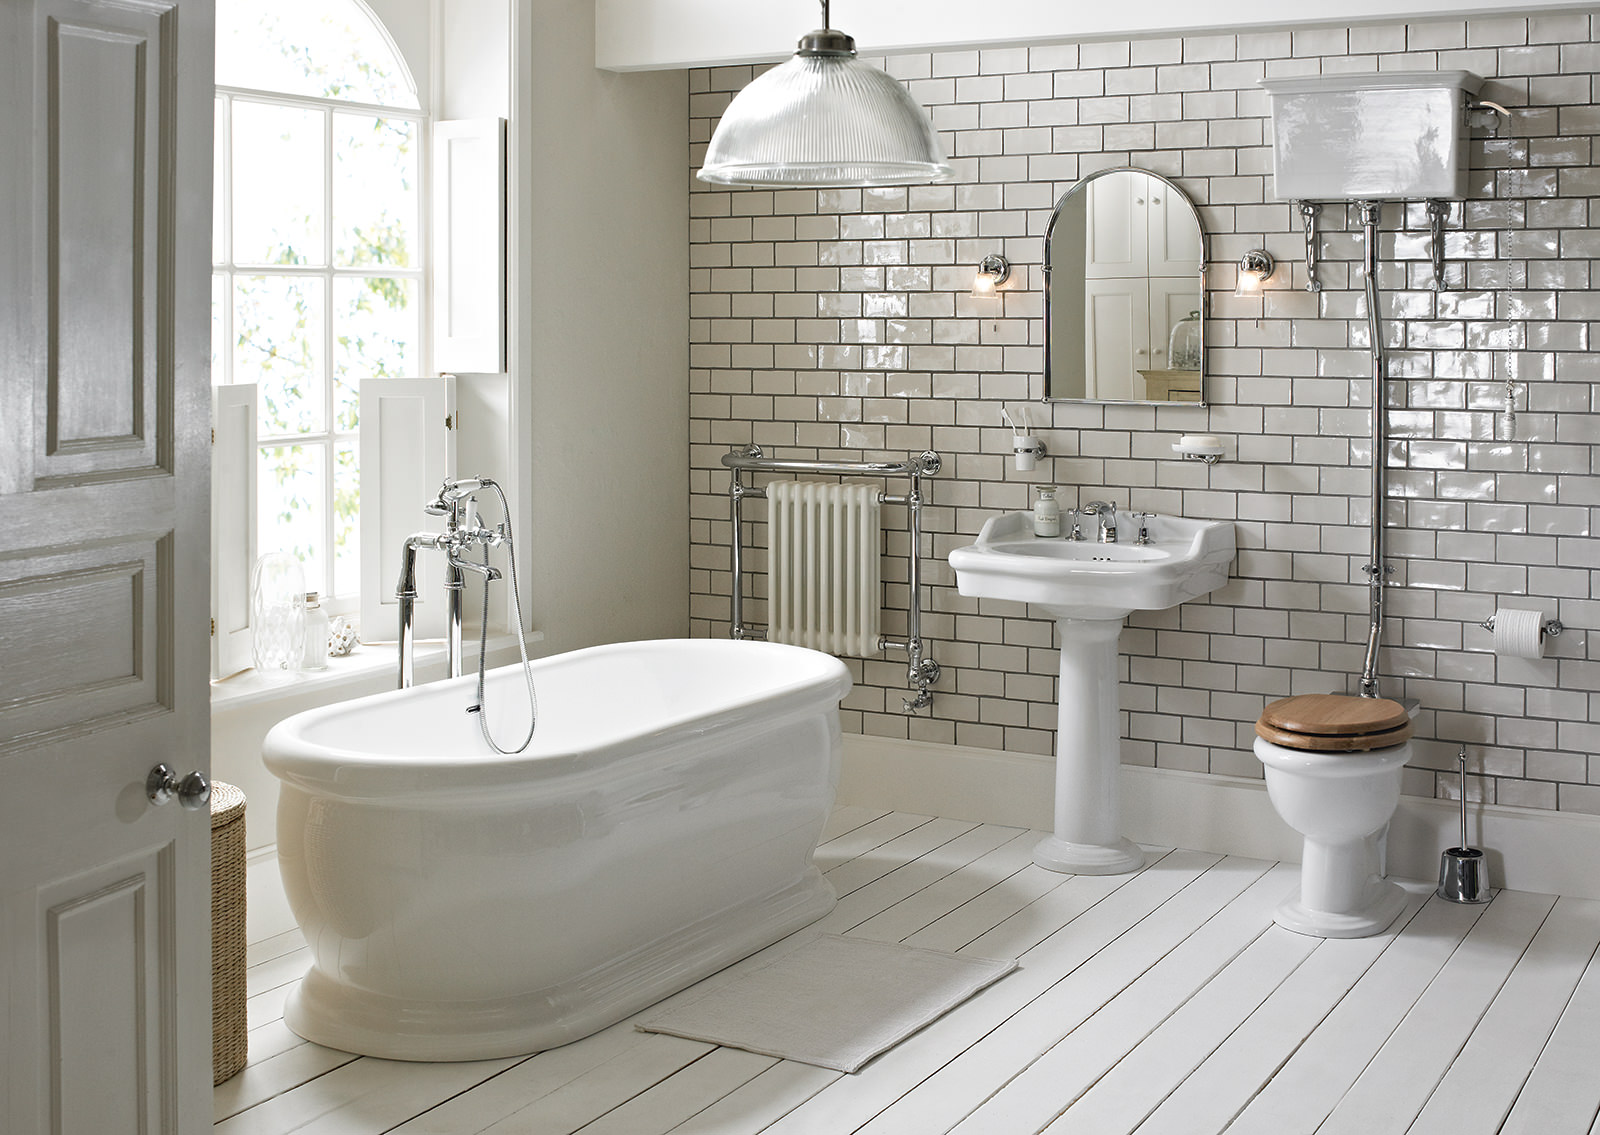 Heritage victoria high level wc and cistern with flush pack for Bathroom inspiration